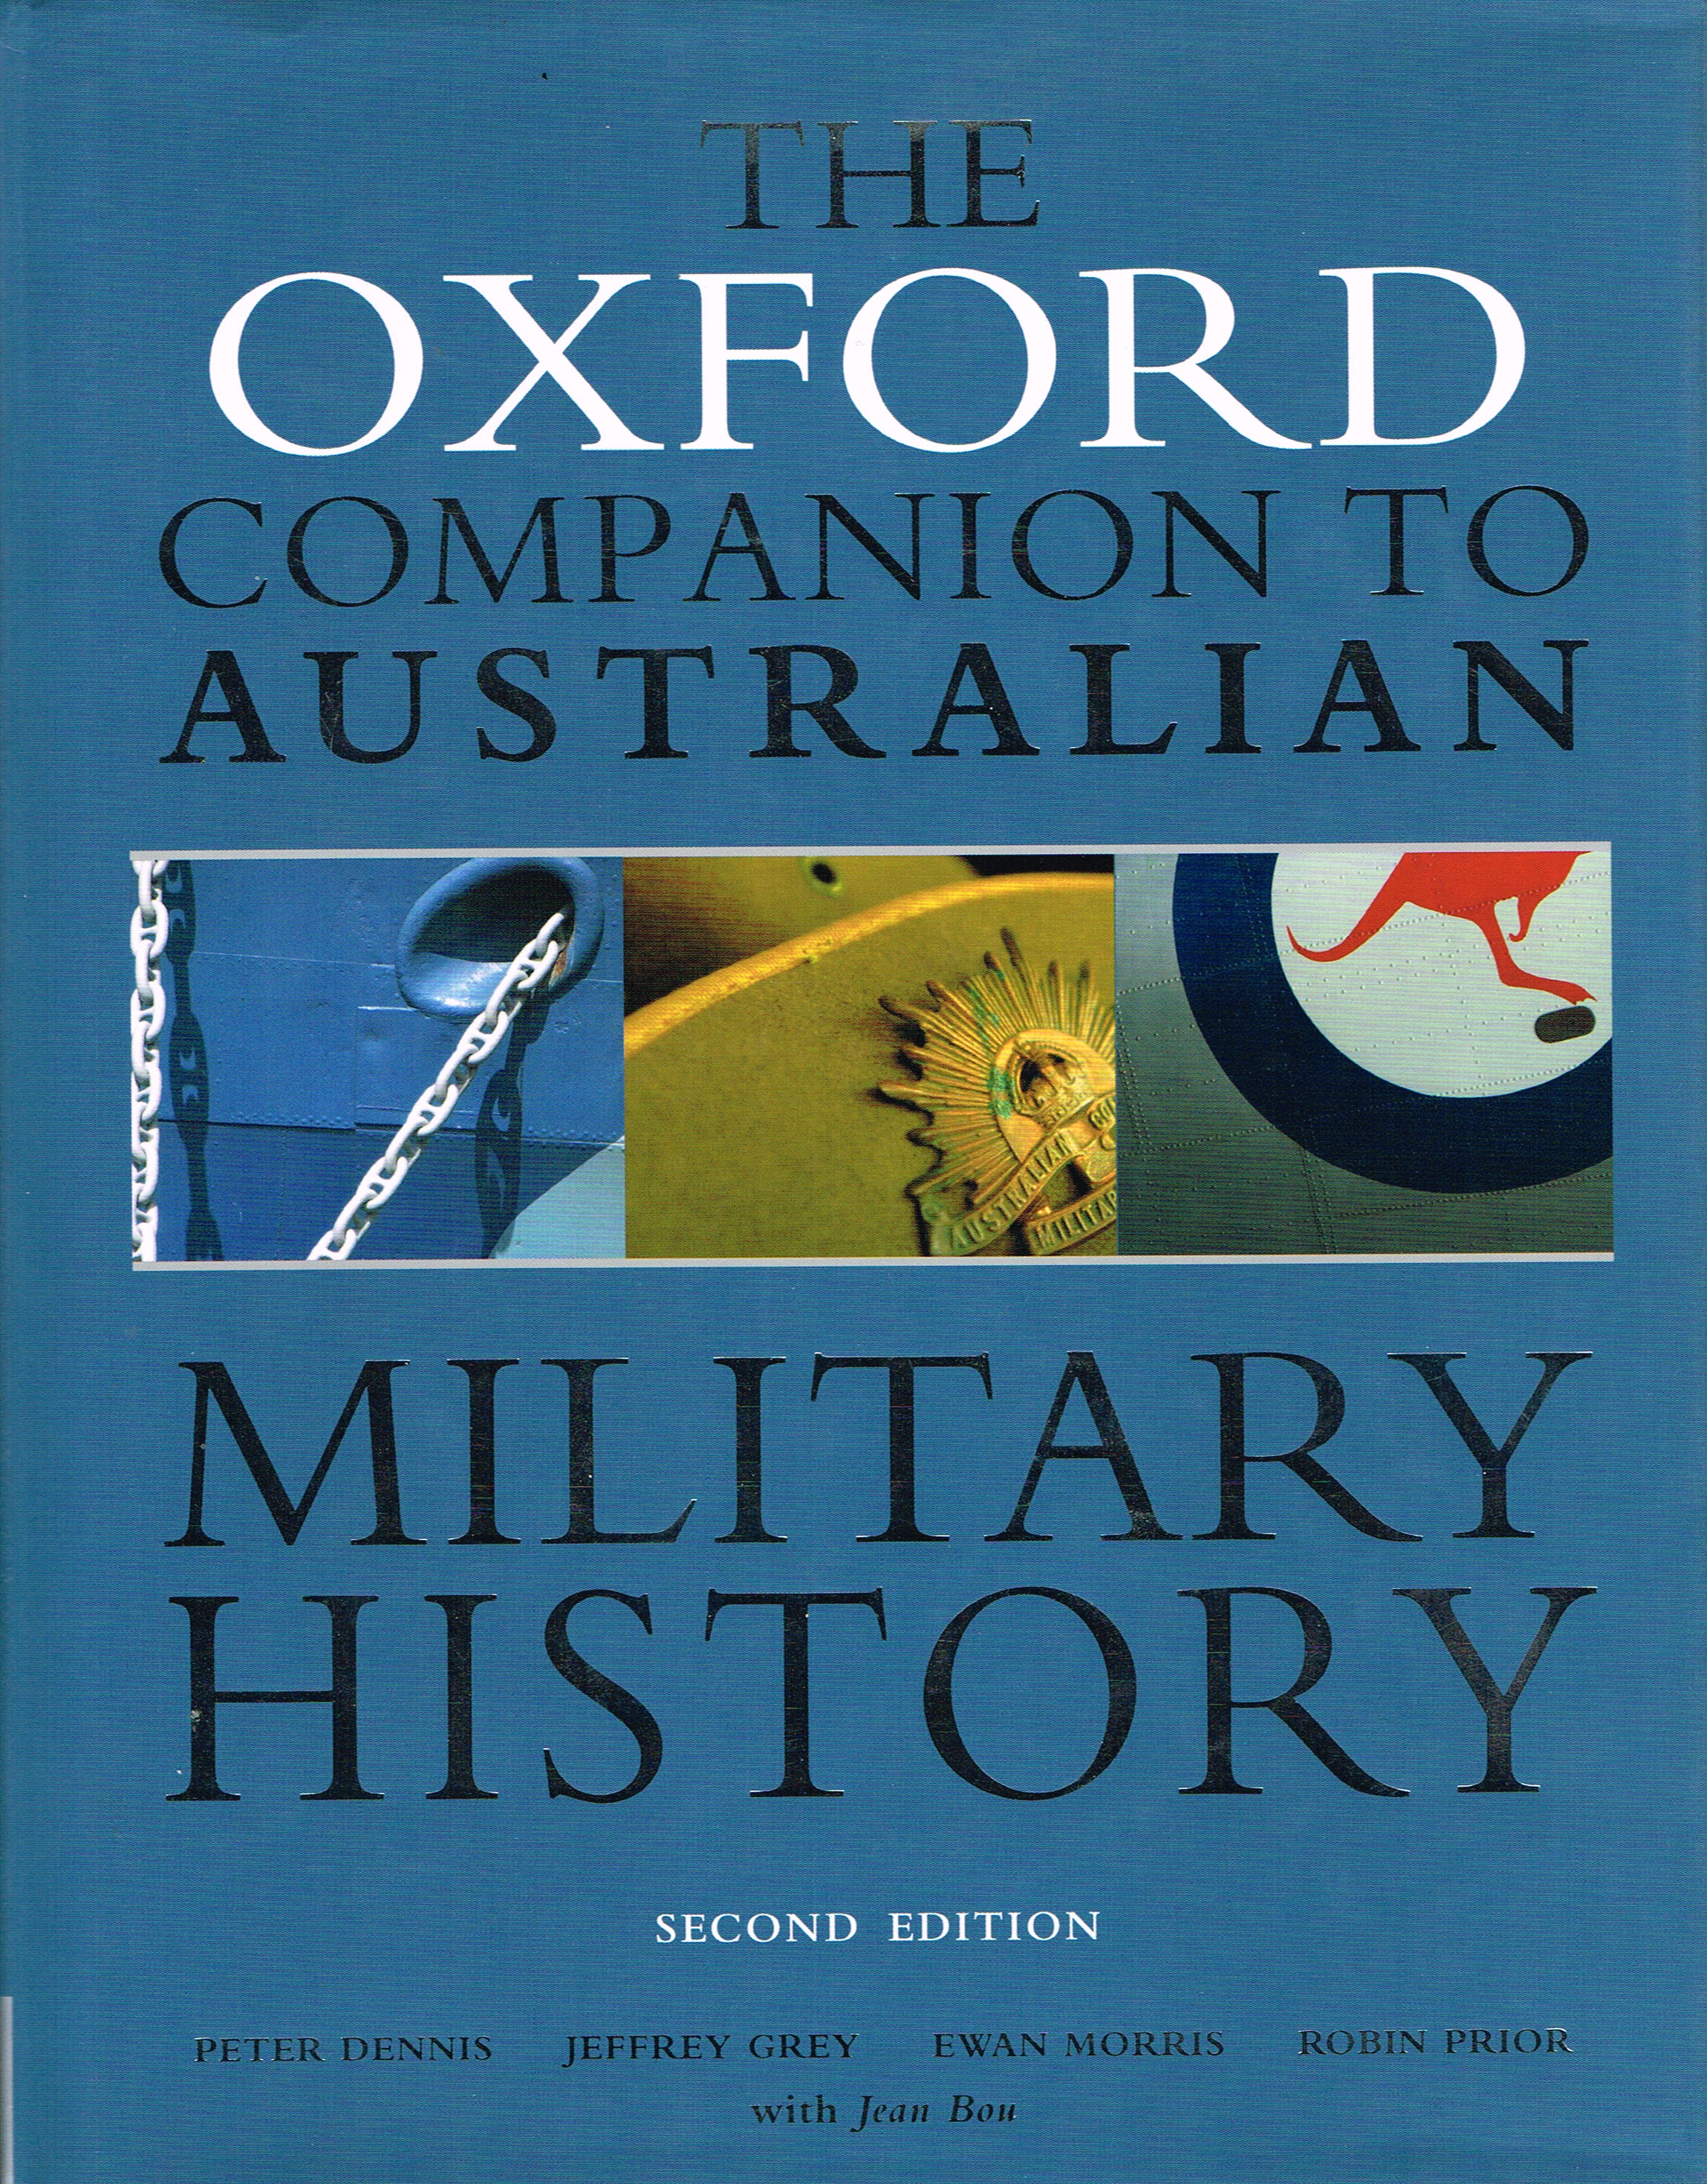 The Oxford companion to Australian military history 2nd edition   Peter Dennis 1945-... [et al.]